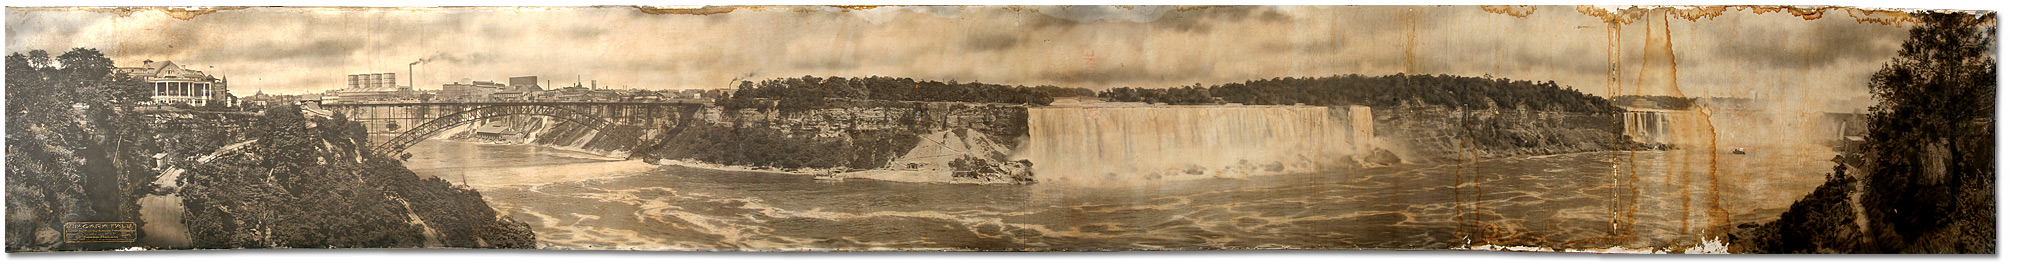 Photographie : Wm. Thomson Panoramas de Freelands - Niagara Falls Summer Panorama